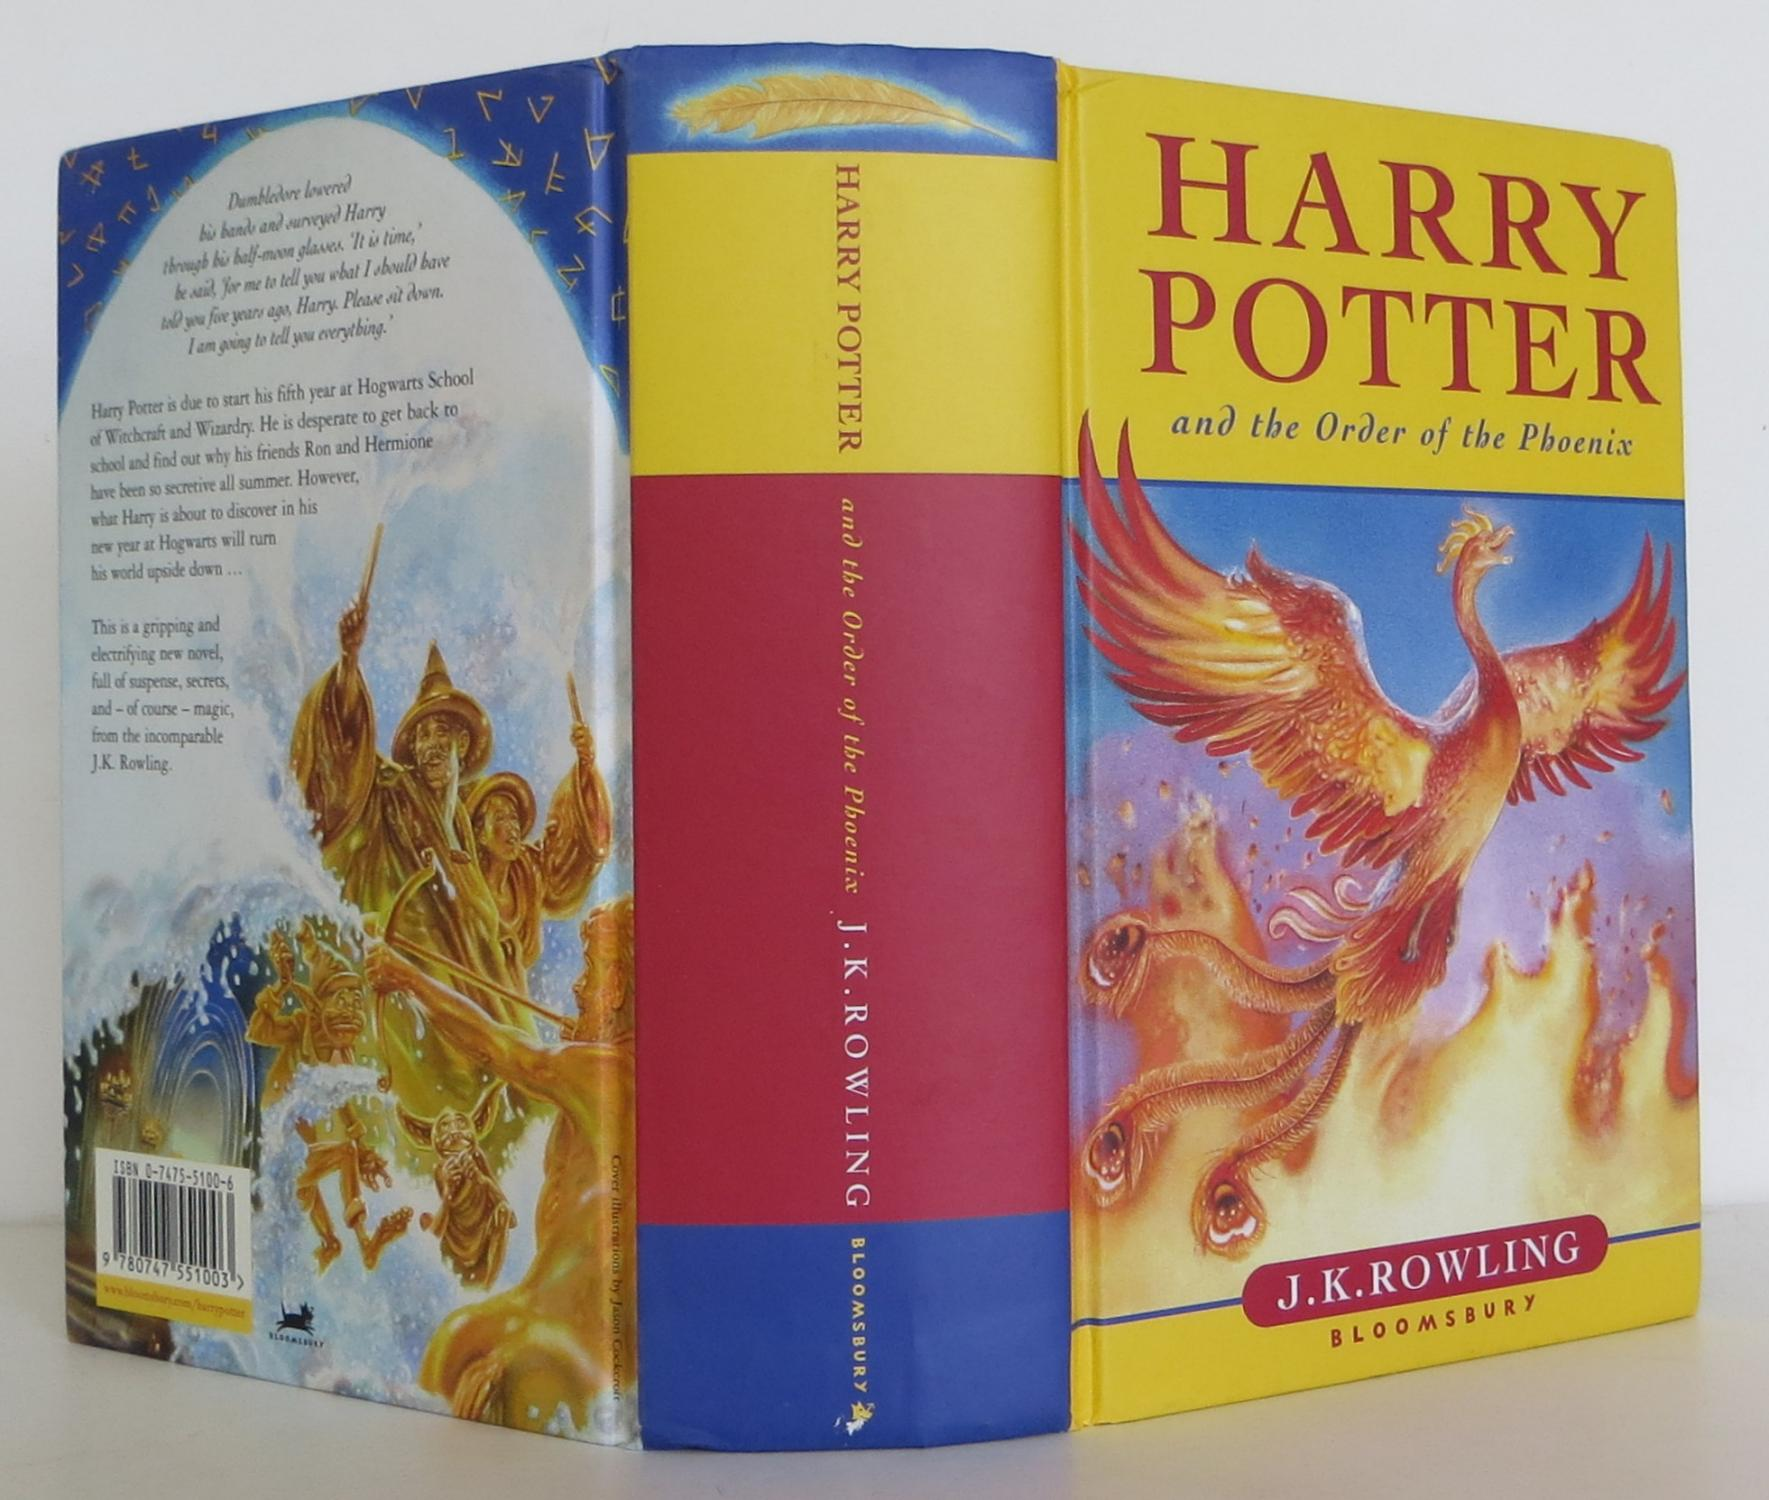 harry potter and the order of the phoenix by rowling j k bloomsbury 9780747551003 hardcover. Black Bedroom Furniture Sets. Home Design Ideas